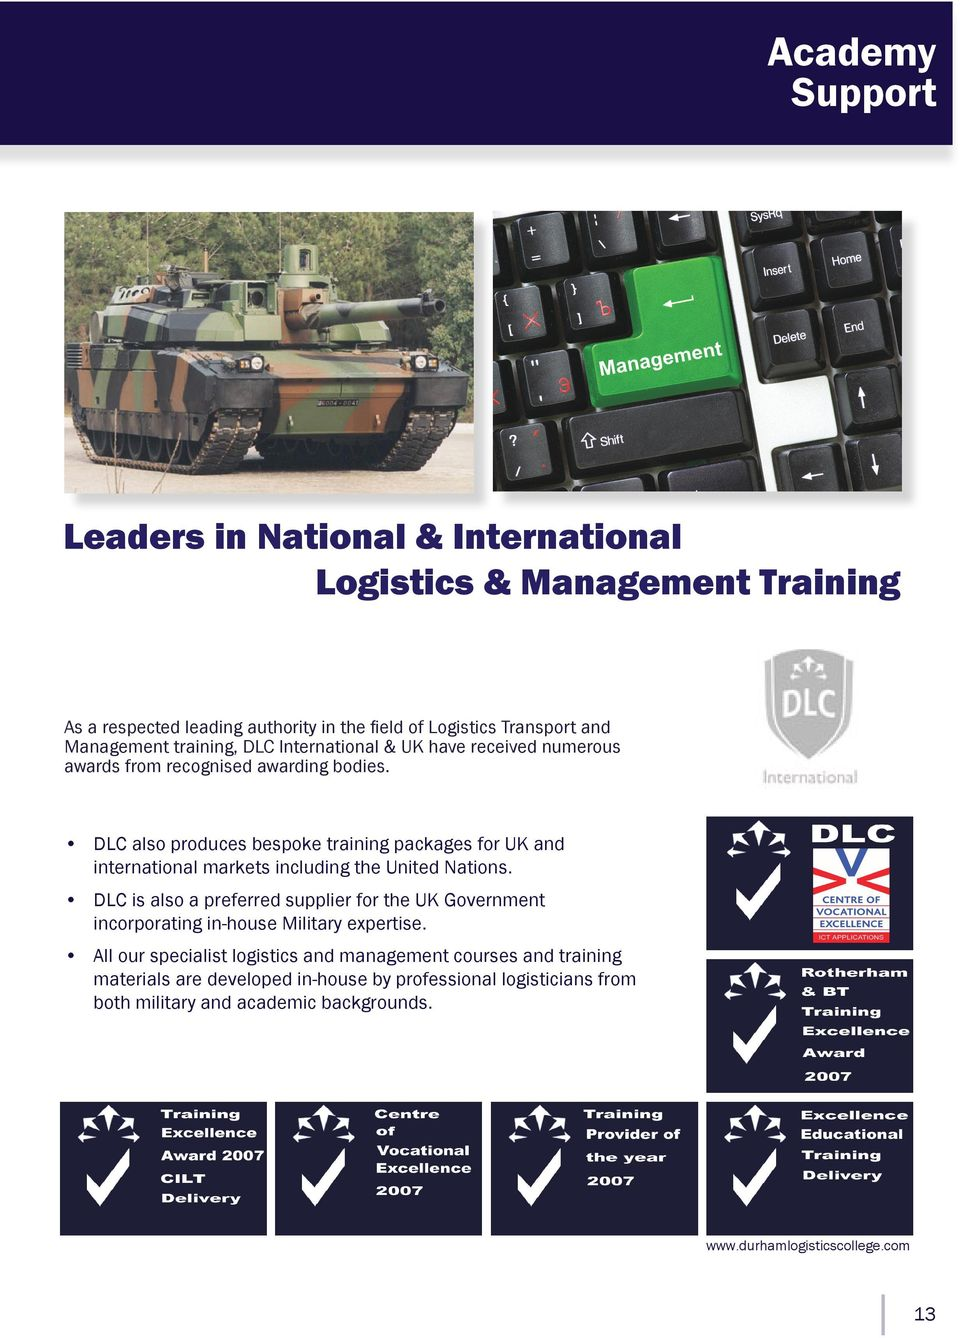 DLC also produces bespoke training packages for UK and international markets including the United Nations.